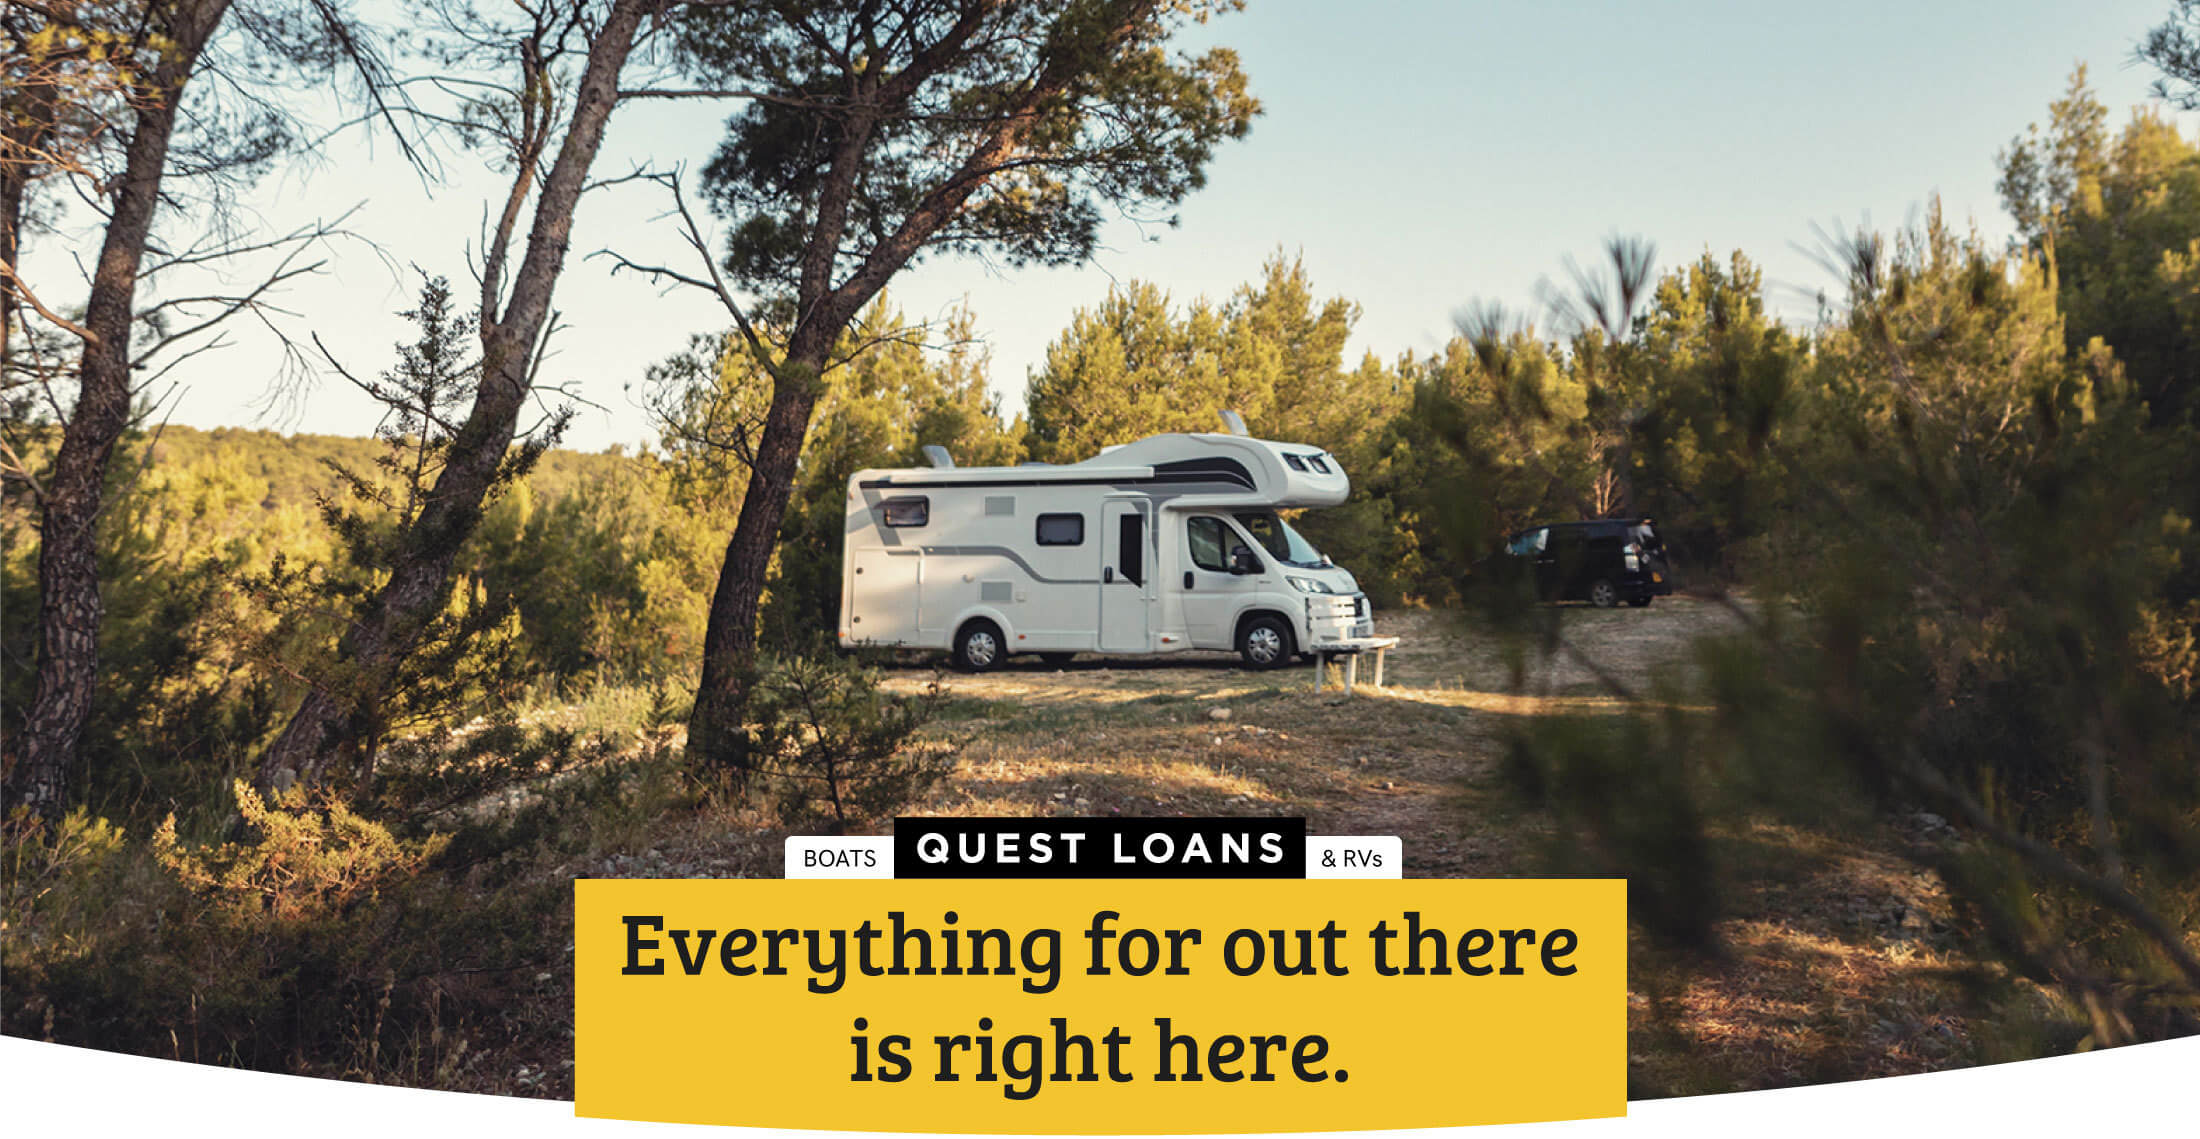 Boats & RVs | QUEST LOANS | Everything for out there is right here.